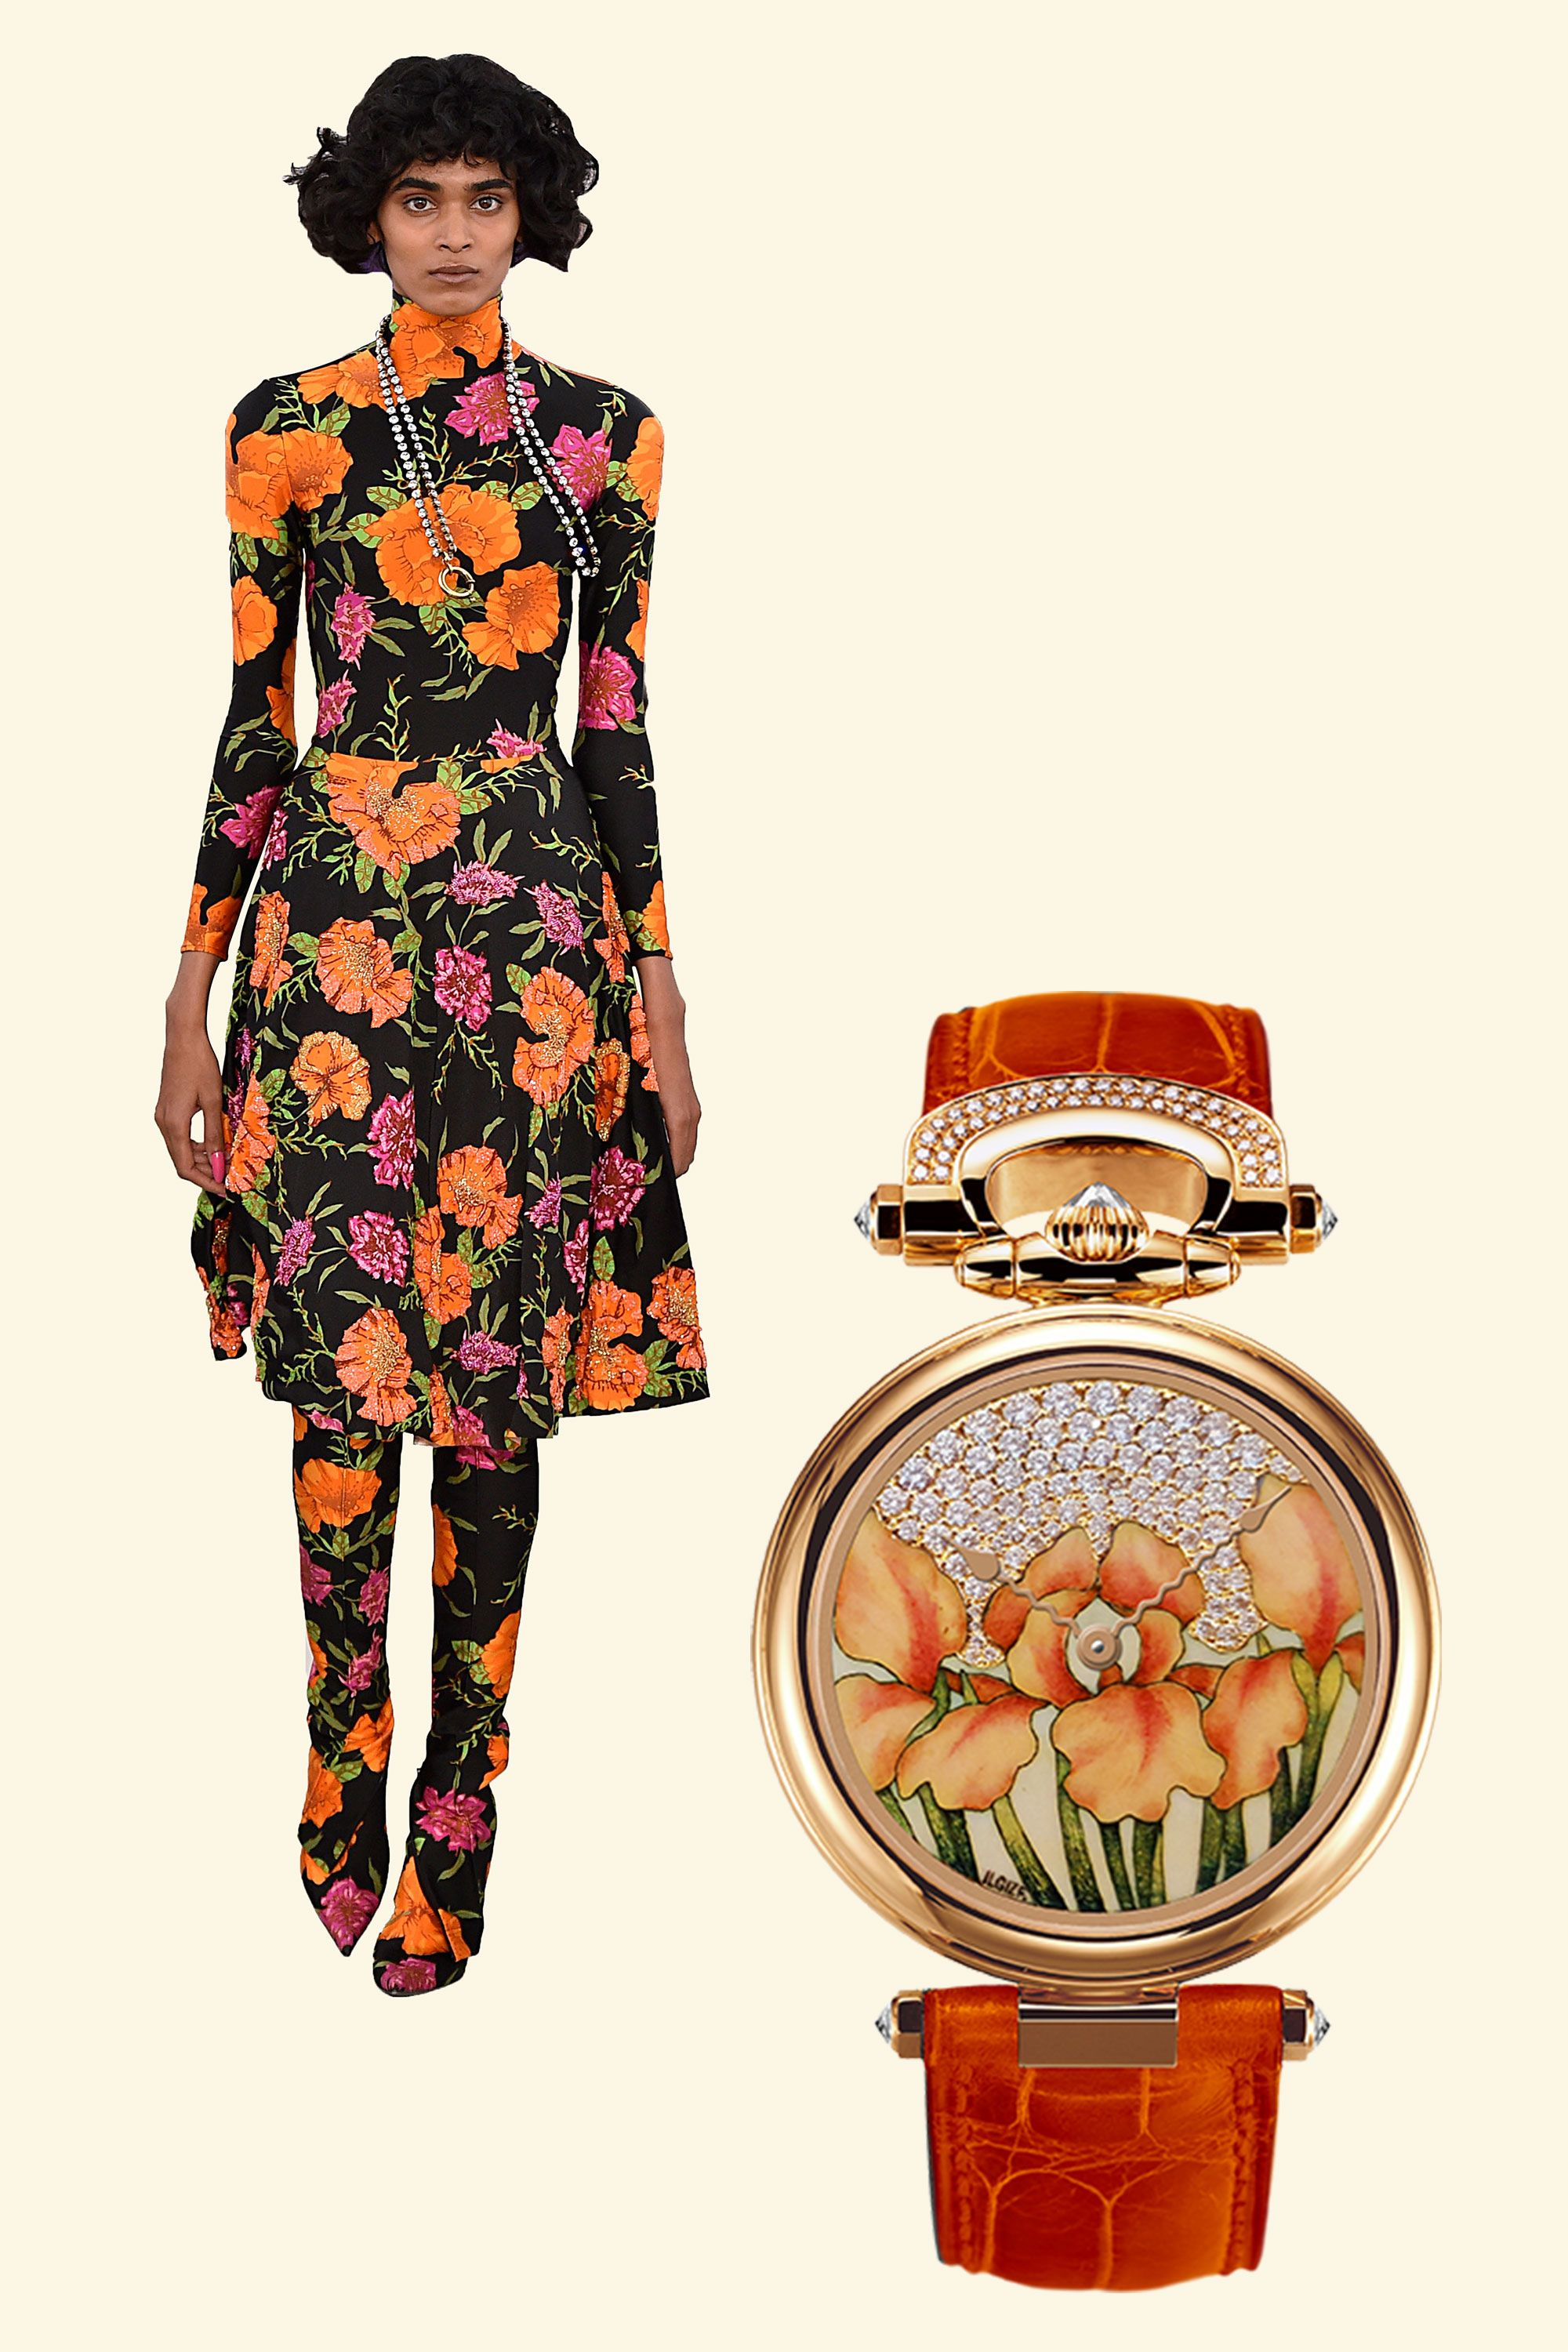 "<p>Hand-painted, bright orange enamel flowers on this timepiece mirror the wild floral patterns shown by Demna Gvasalia for Balenciaga—and even cooler, this convertible watch can be worn on the wrist or as a pendant, or even displayed as a table clock. </p><p><em data-redactor-tag=""em"" data-verified=""redactor"">1822 Orange ""Iris"" enamel miniature painting timepiece, $136,200, </em><a href=""https://www.bovet.com/timepiece/fleurier-ladies-fired-enamel-miniature-painting-by-ilgiz-f/"" target=""_blank"" data-tracking-id=""recirc-text-link""><em data-redactor-tag=""em"" data-verified=""redactor"">bovet.com</em></a></p>"